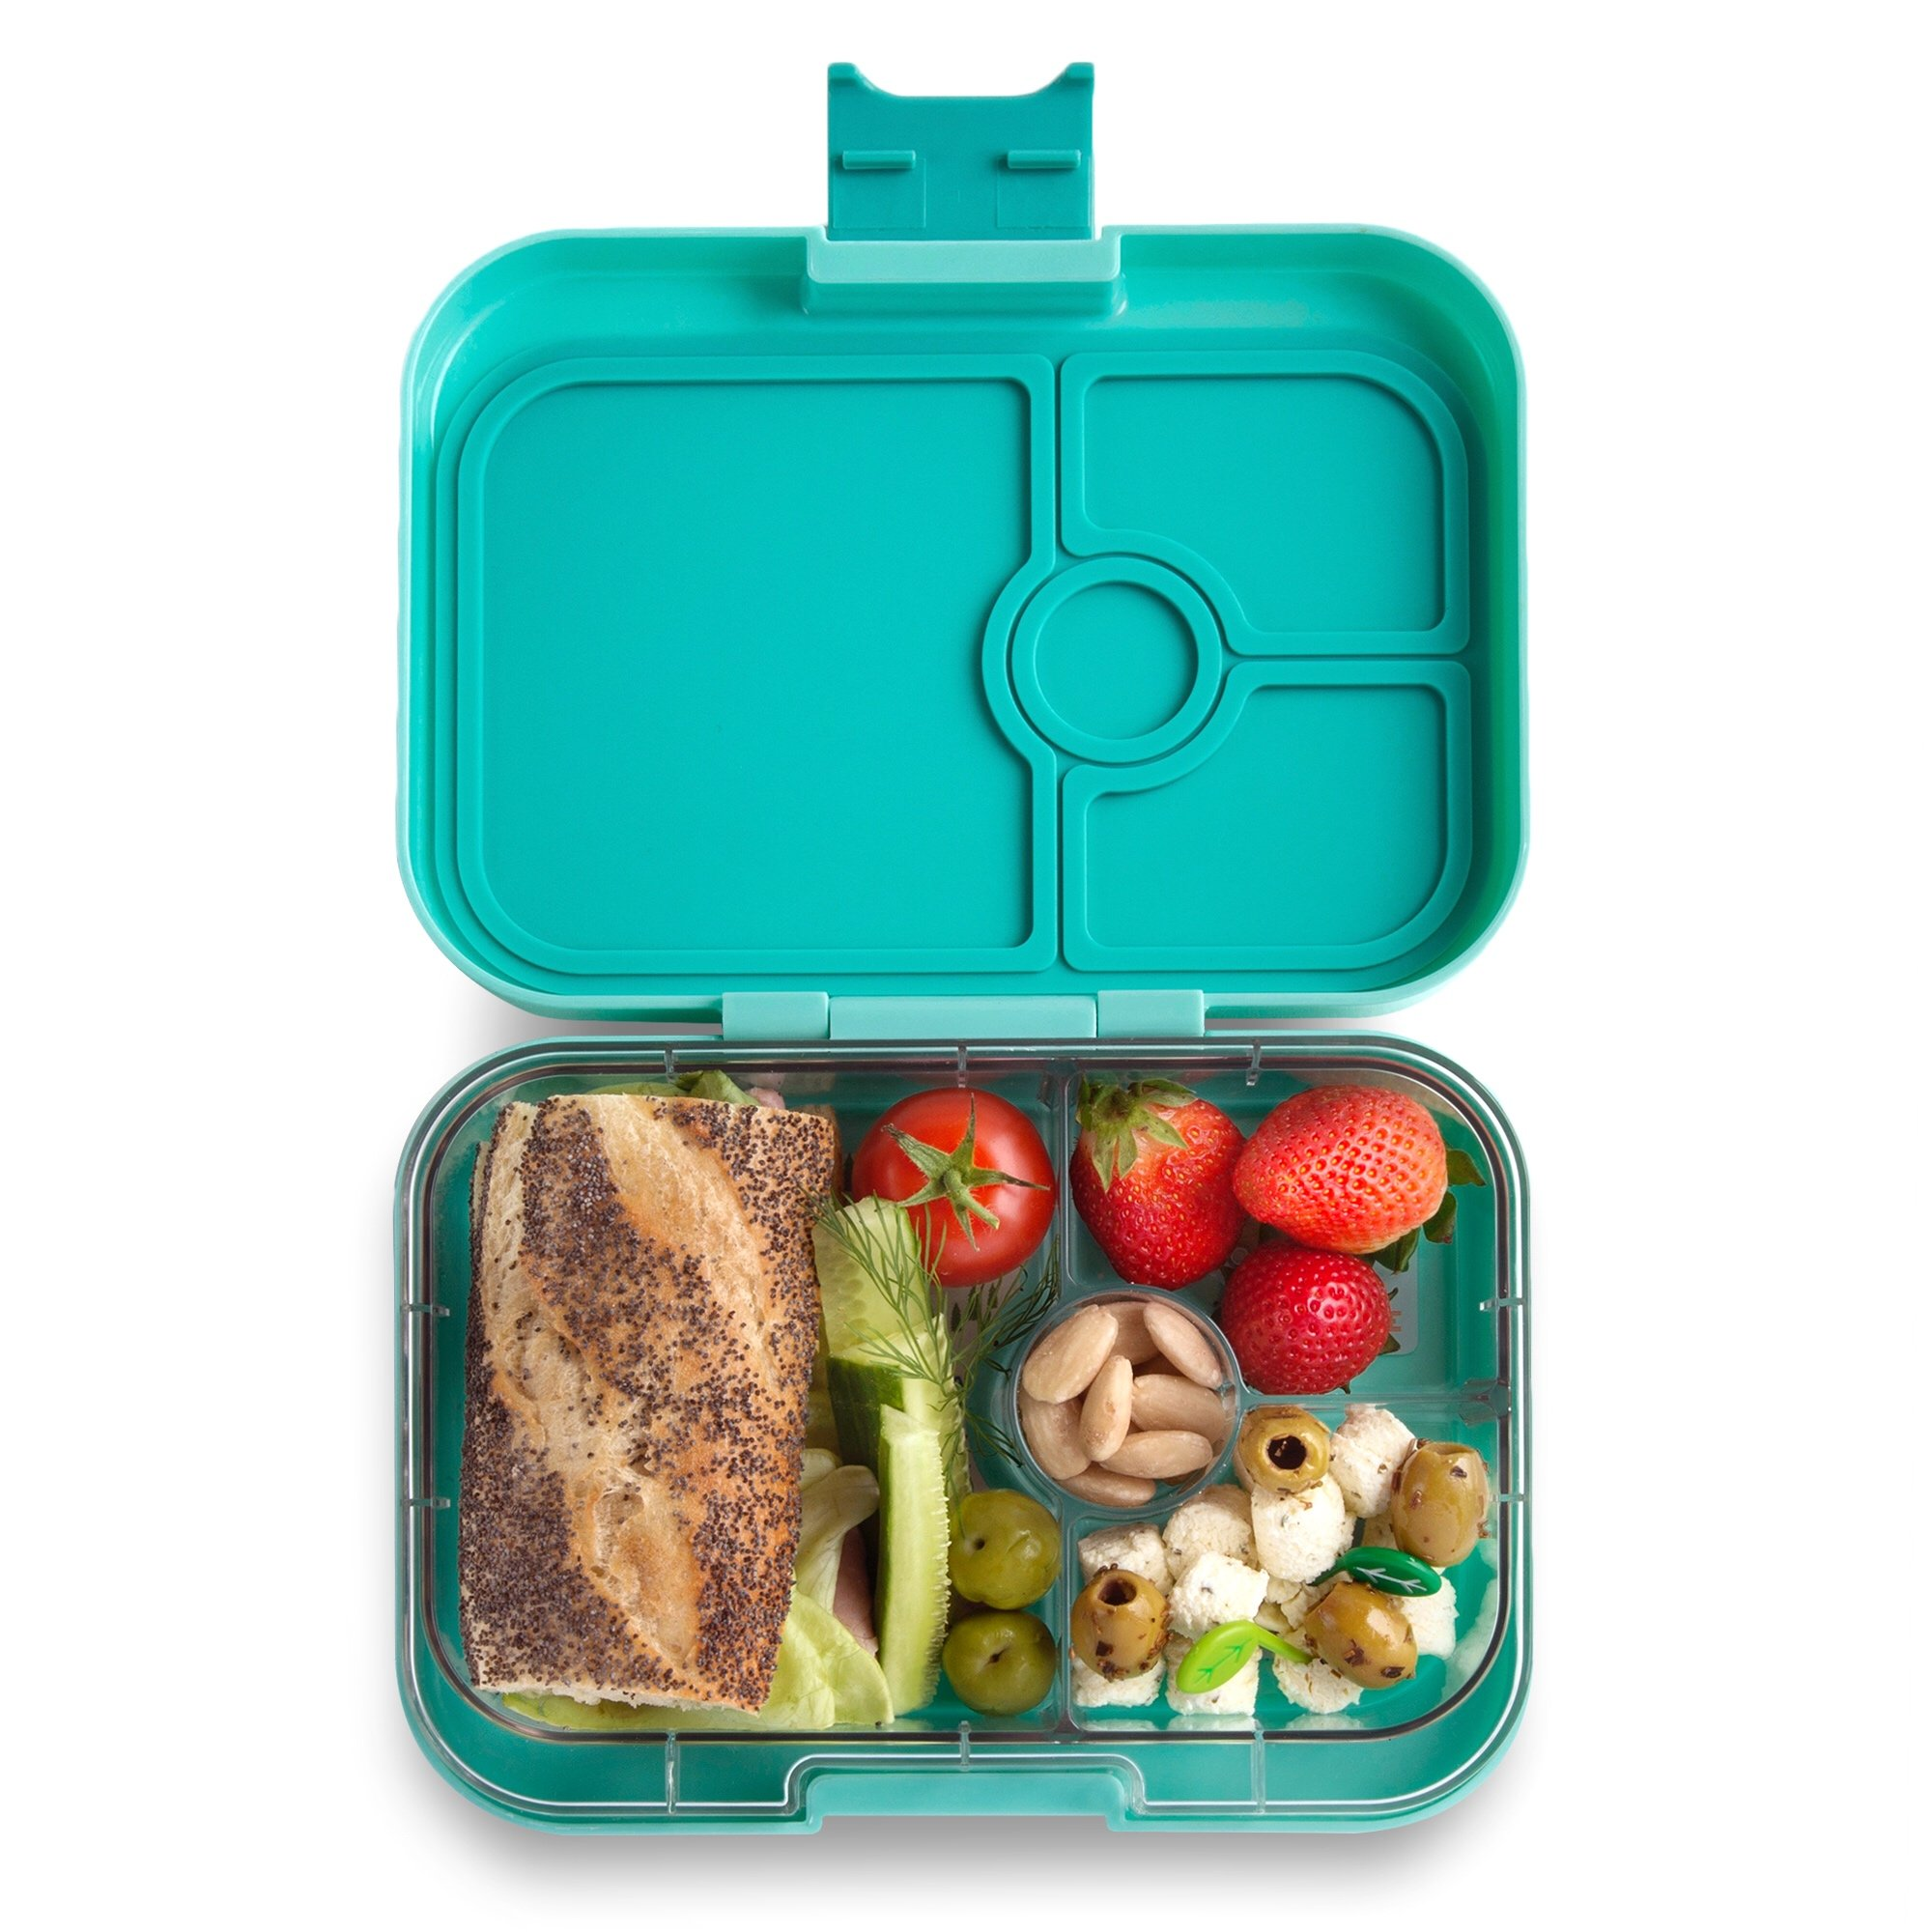 YUMBOX Panino (Surf Green) Leakproof Bento Lunch Box Container for Kids & Adults